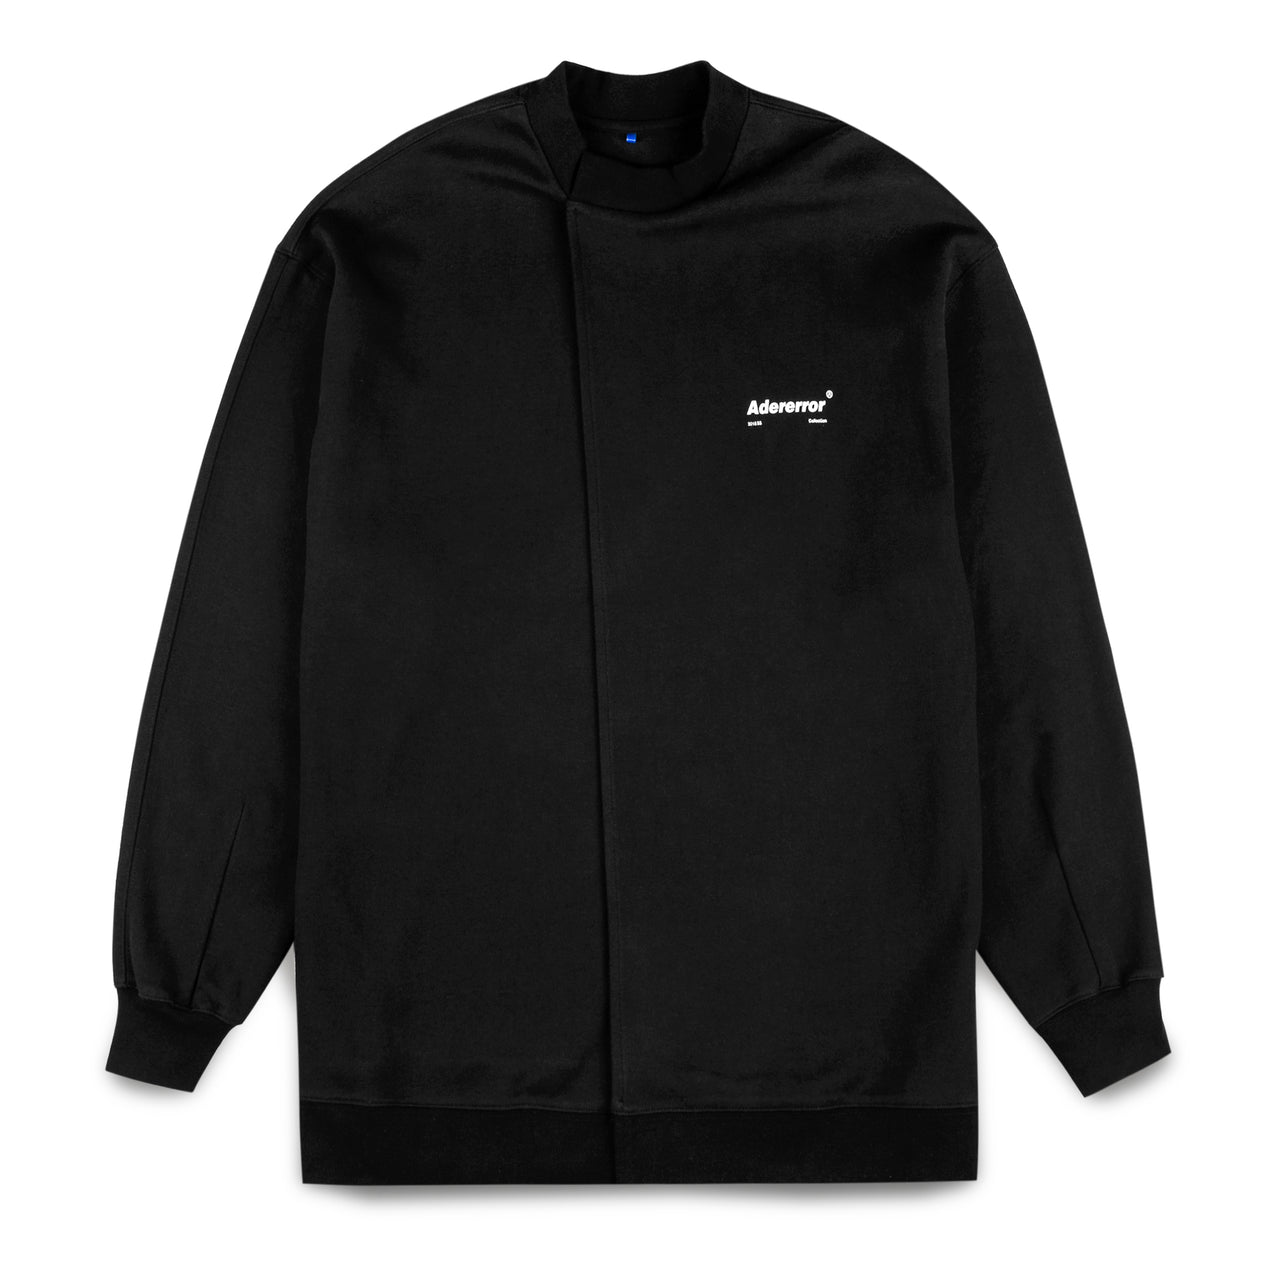 Adererror Placket Sweatshirt